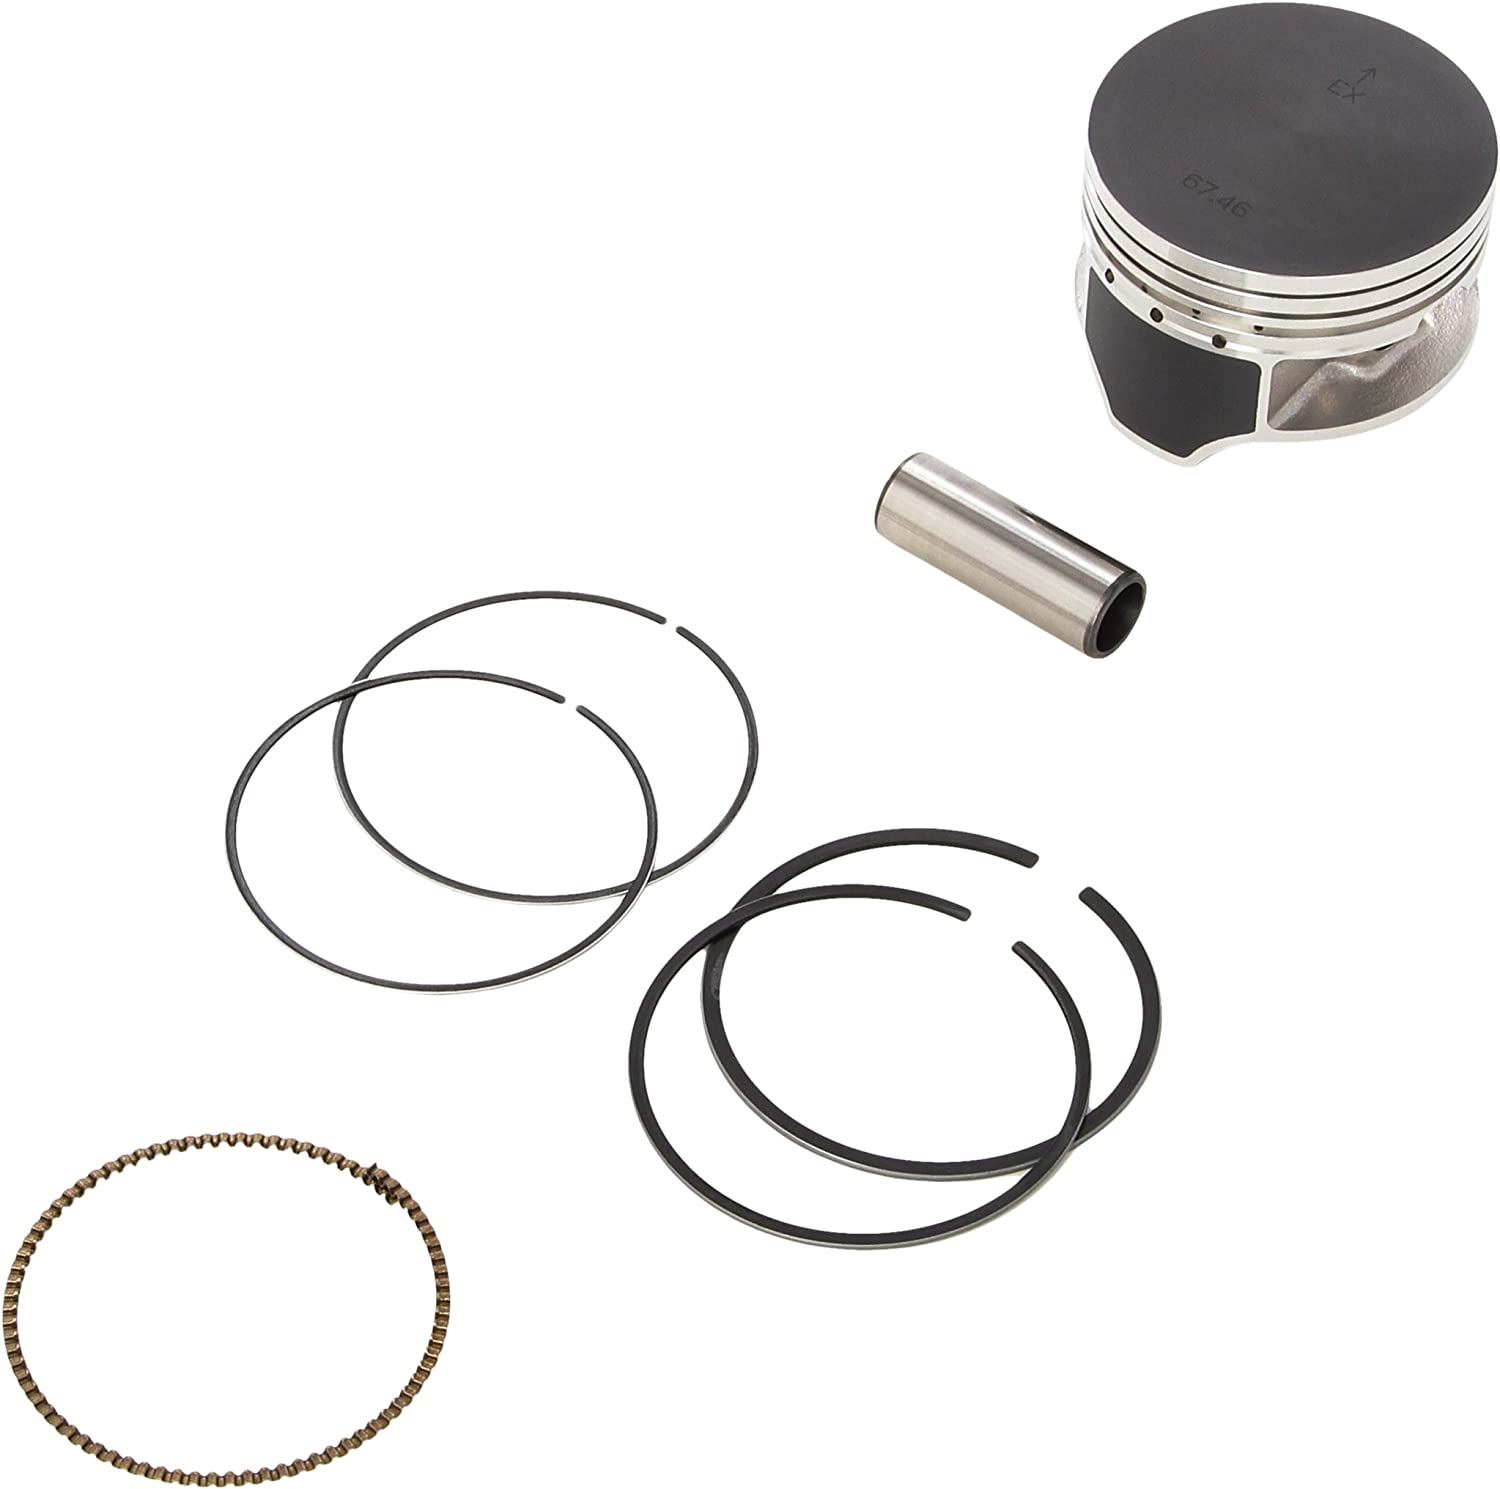 Namura 67.47mm Diameter Piston Kit NA-30000-6